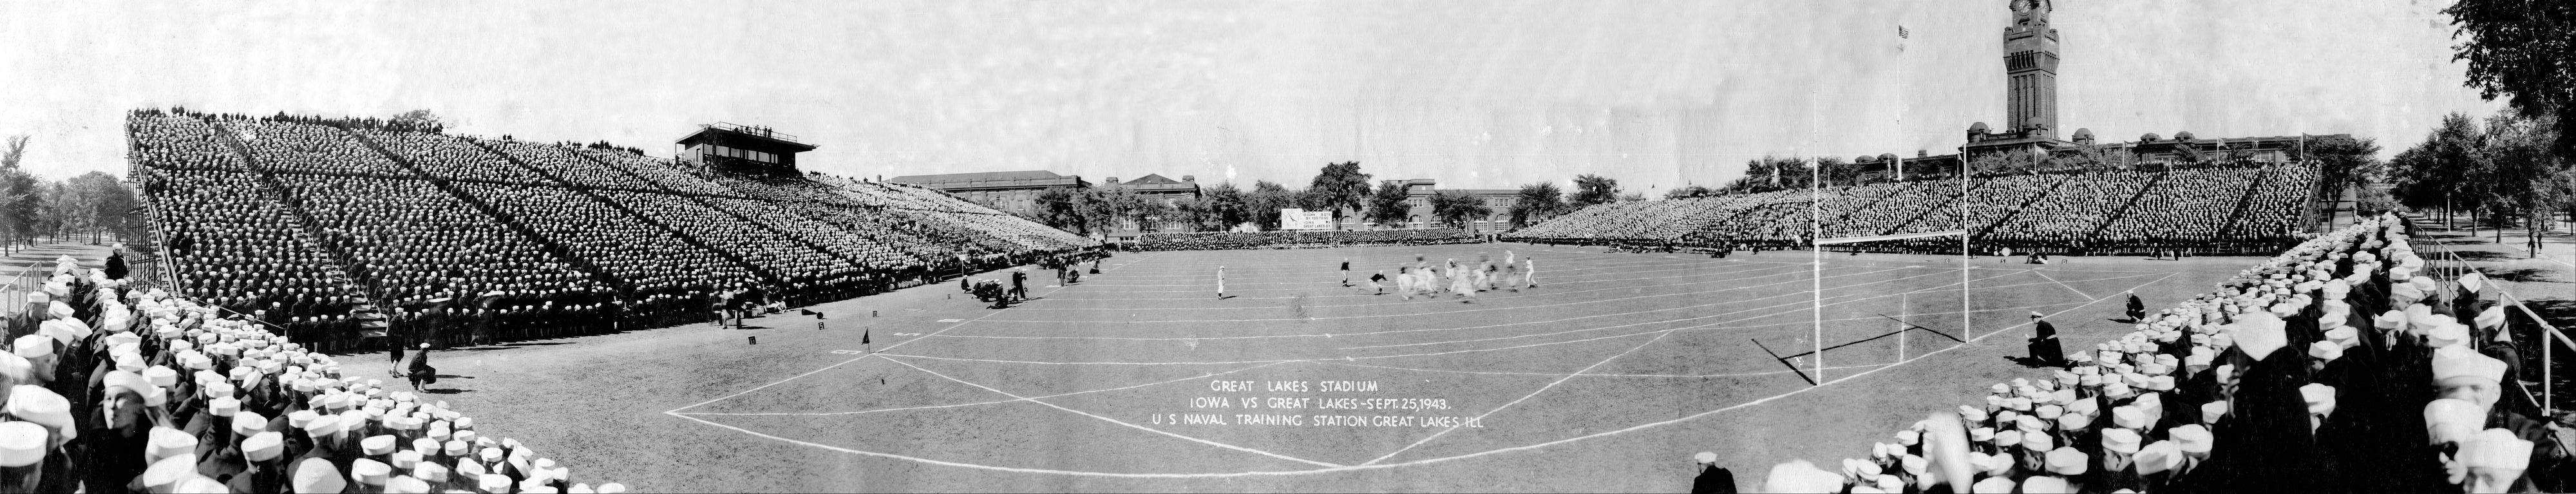 Great Lakes Naval Station once played major college football teams. This is a 1943 photo of football being played on Ross Field at Great Lakes.